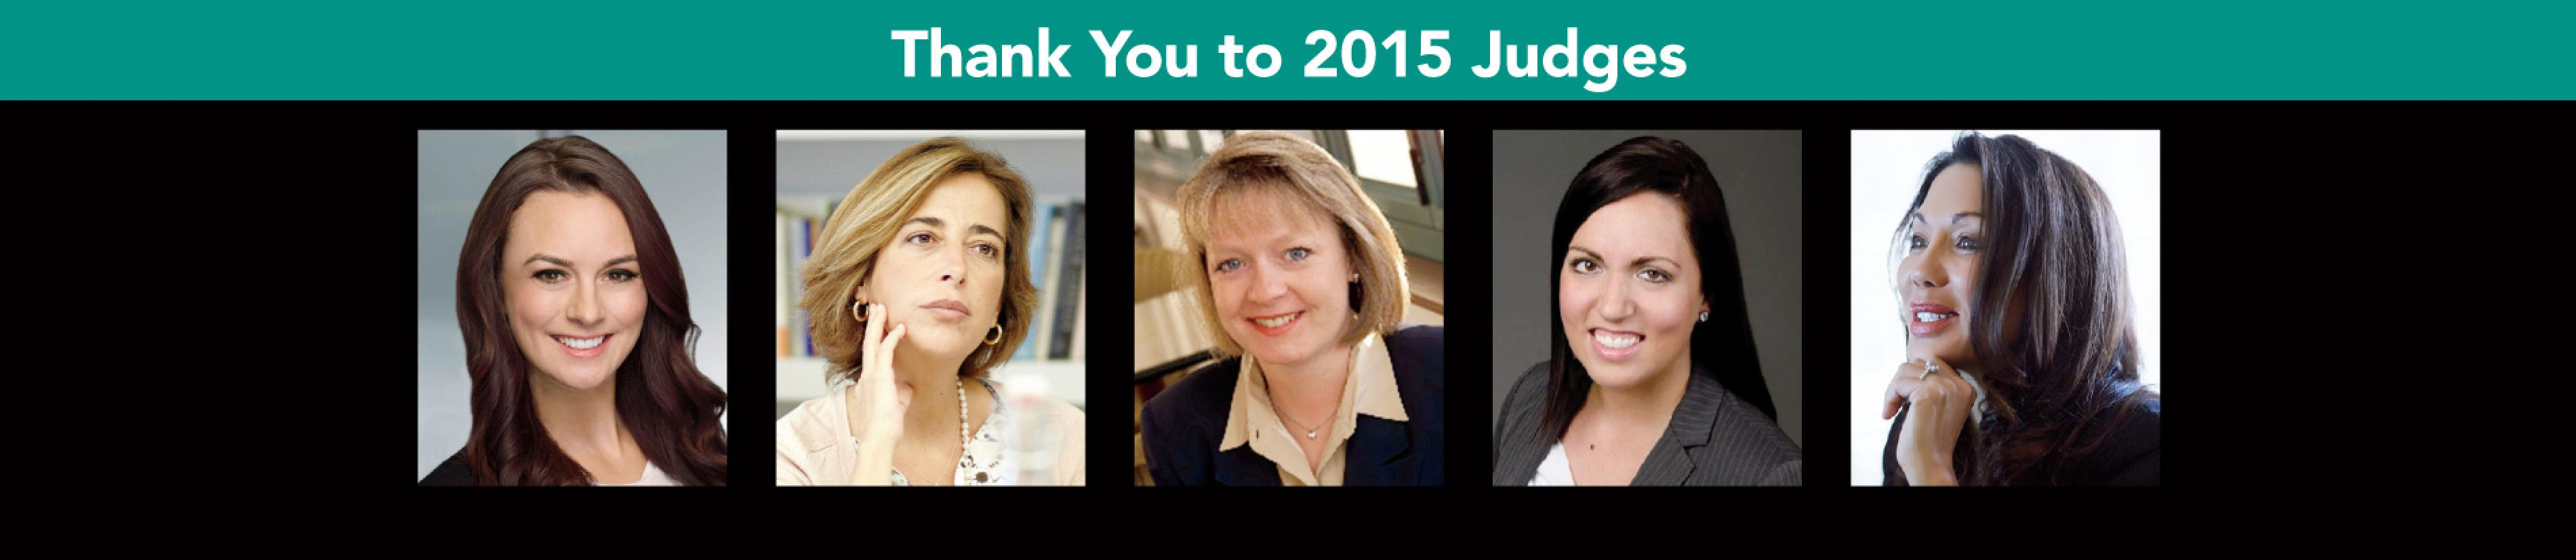 Thank You Judges